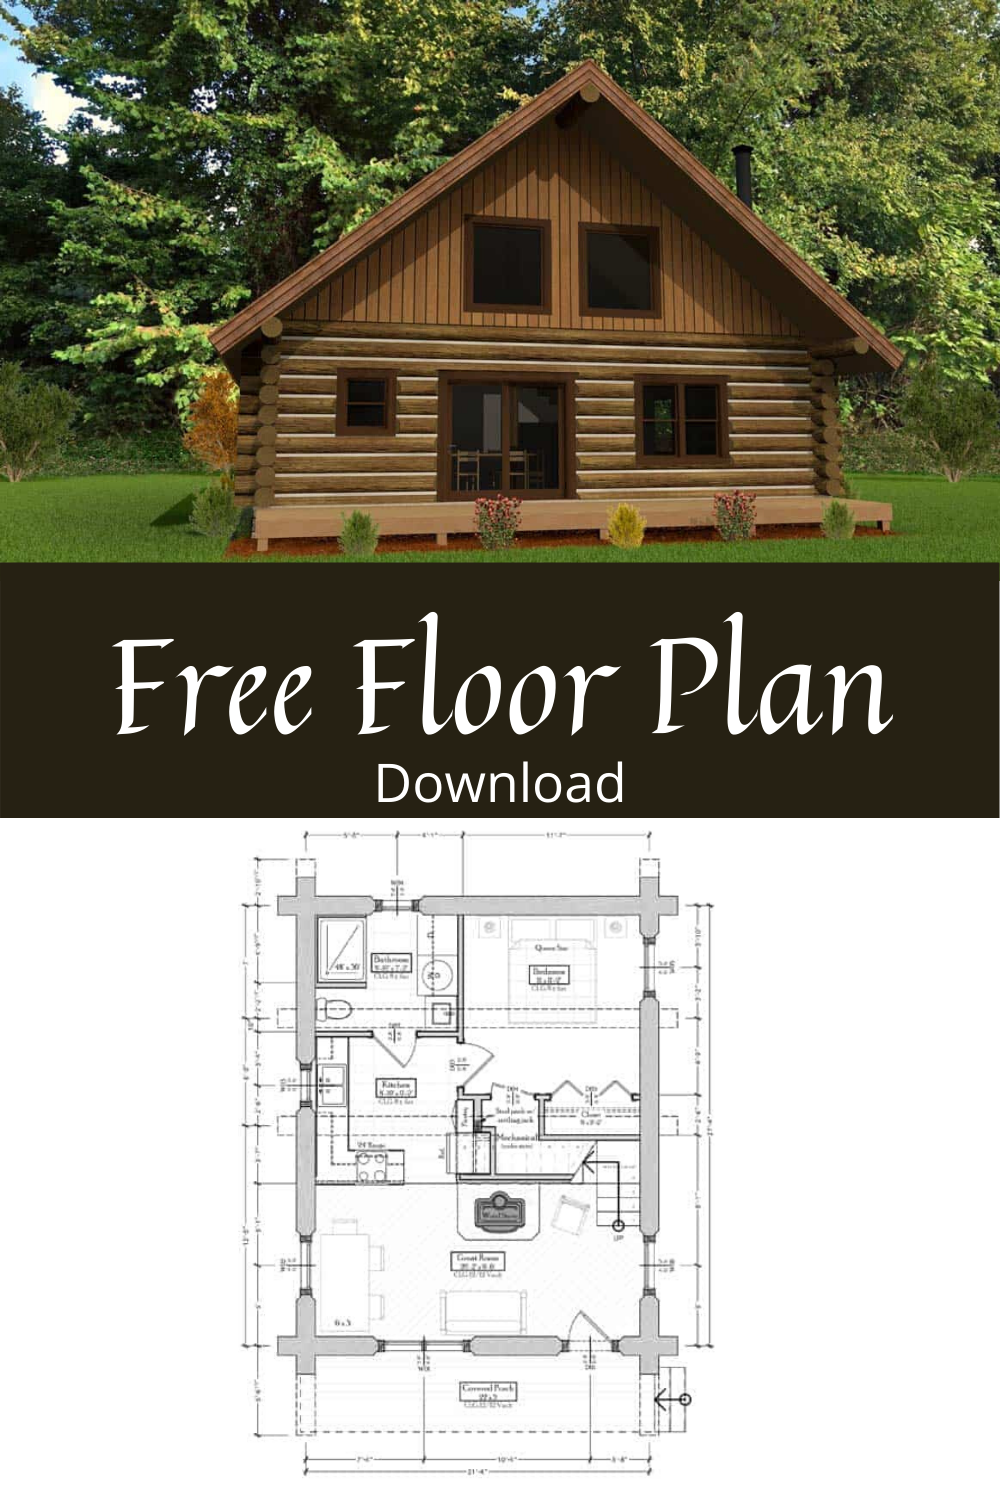 Best Log Cabin Floor Plan For Small Budgets In 2020 Log Cabin Floor Plans Cabin House Plans Log Home Designs